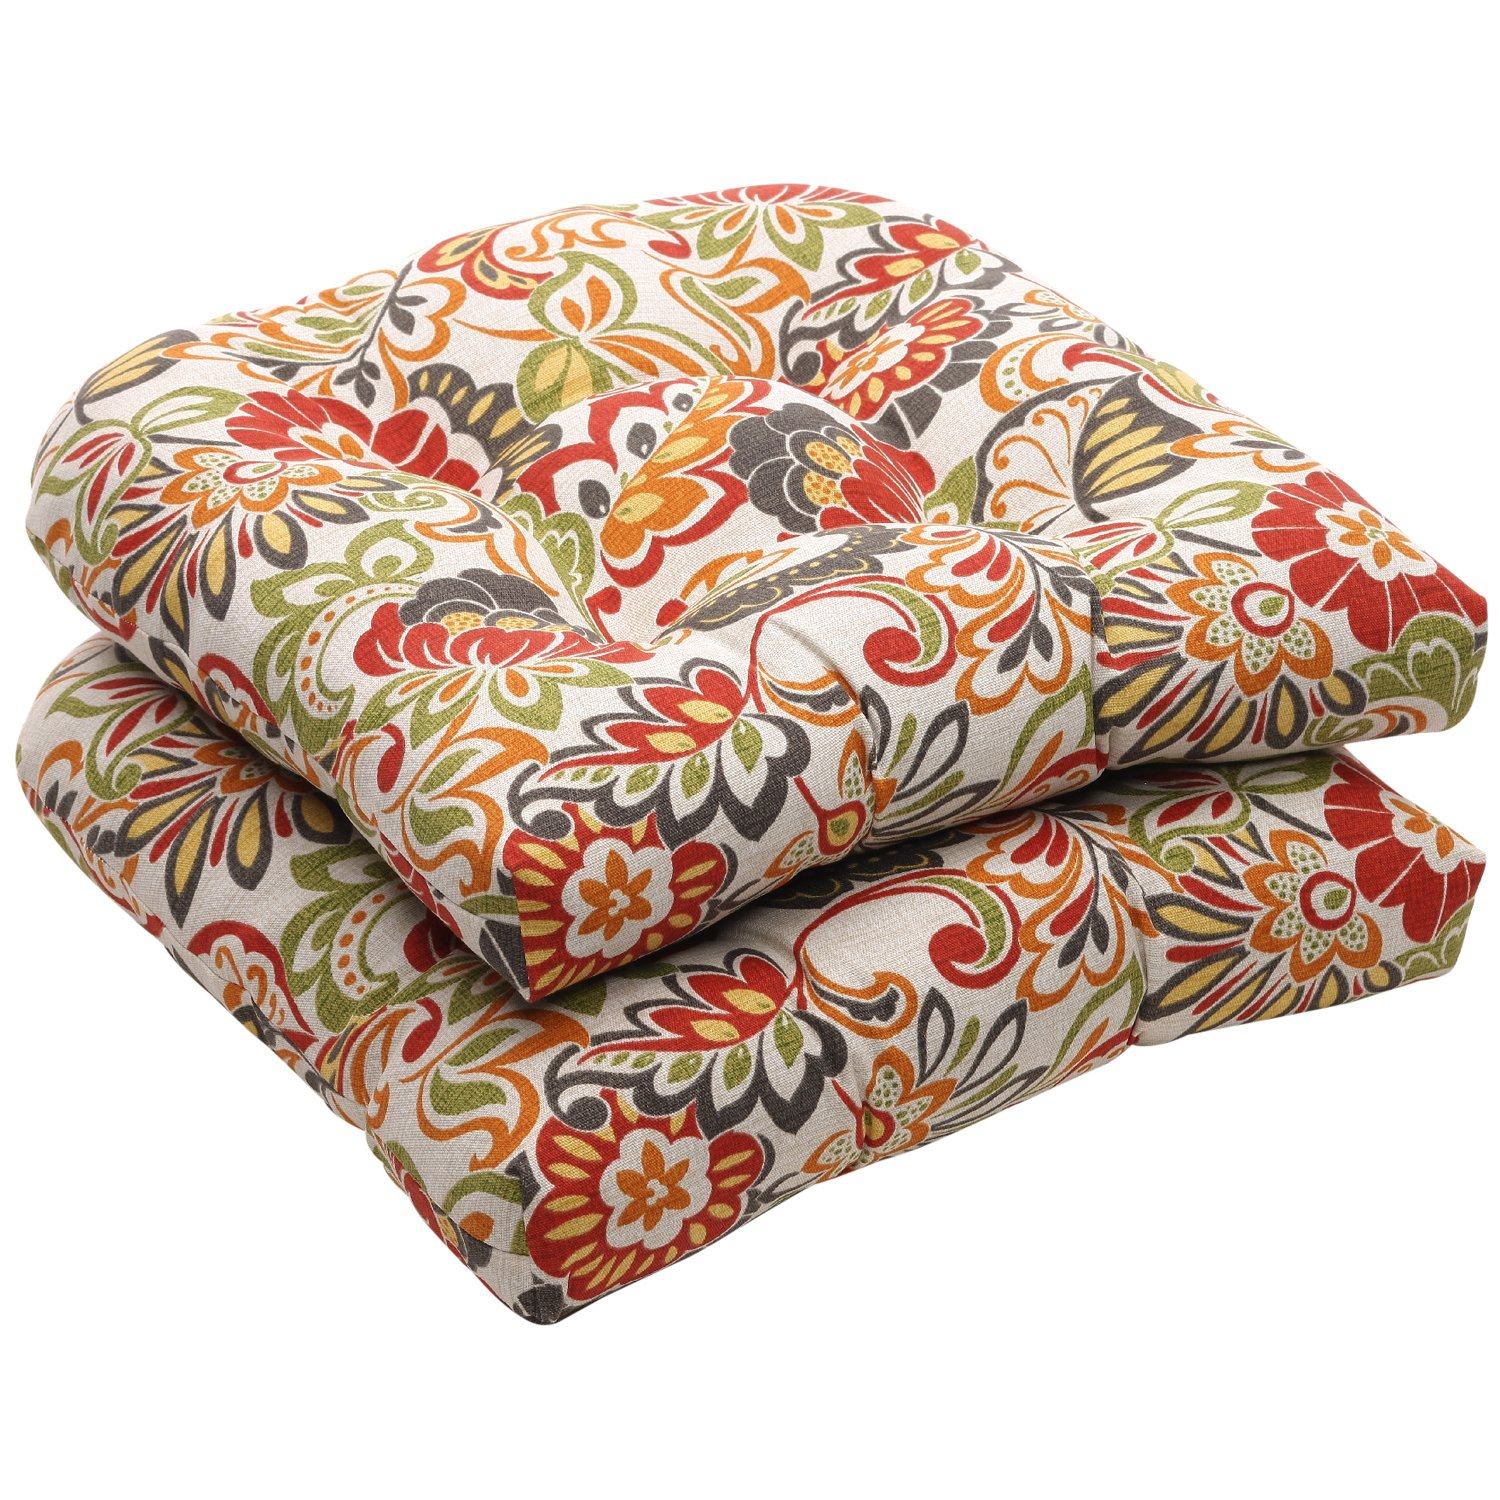 Charmant Amazon.com: Pillow Perfect Indoor/Outdoor Multicolored Modern Floral Wicker Seat  Cushions, 2 Pack: Home U0026 Kitchen